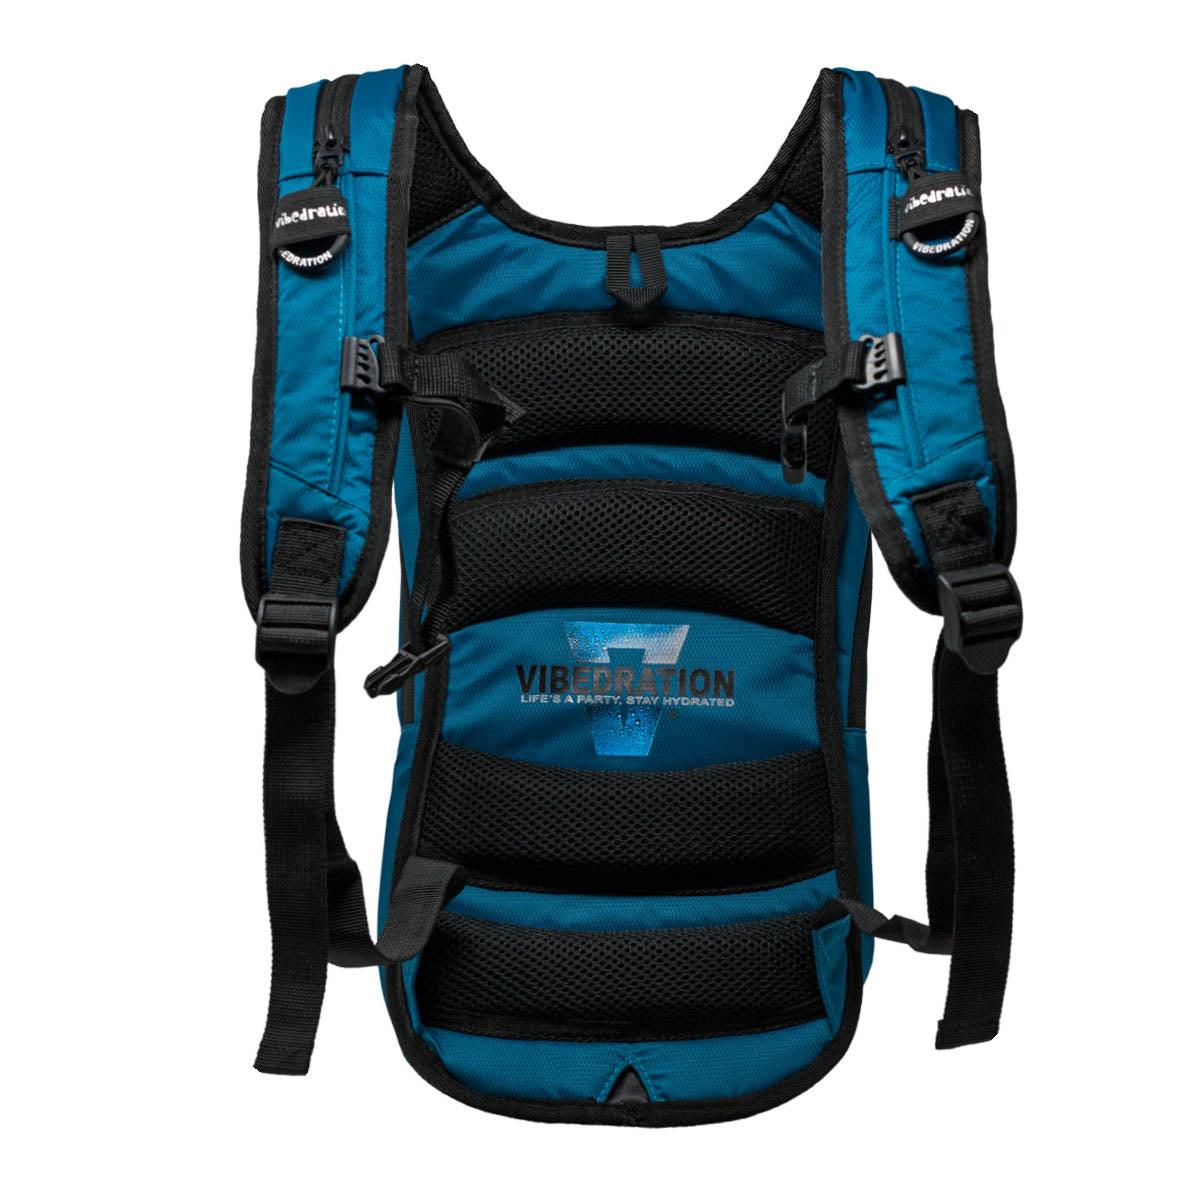 Backside view of padded dark blue nylon hydration pack.